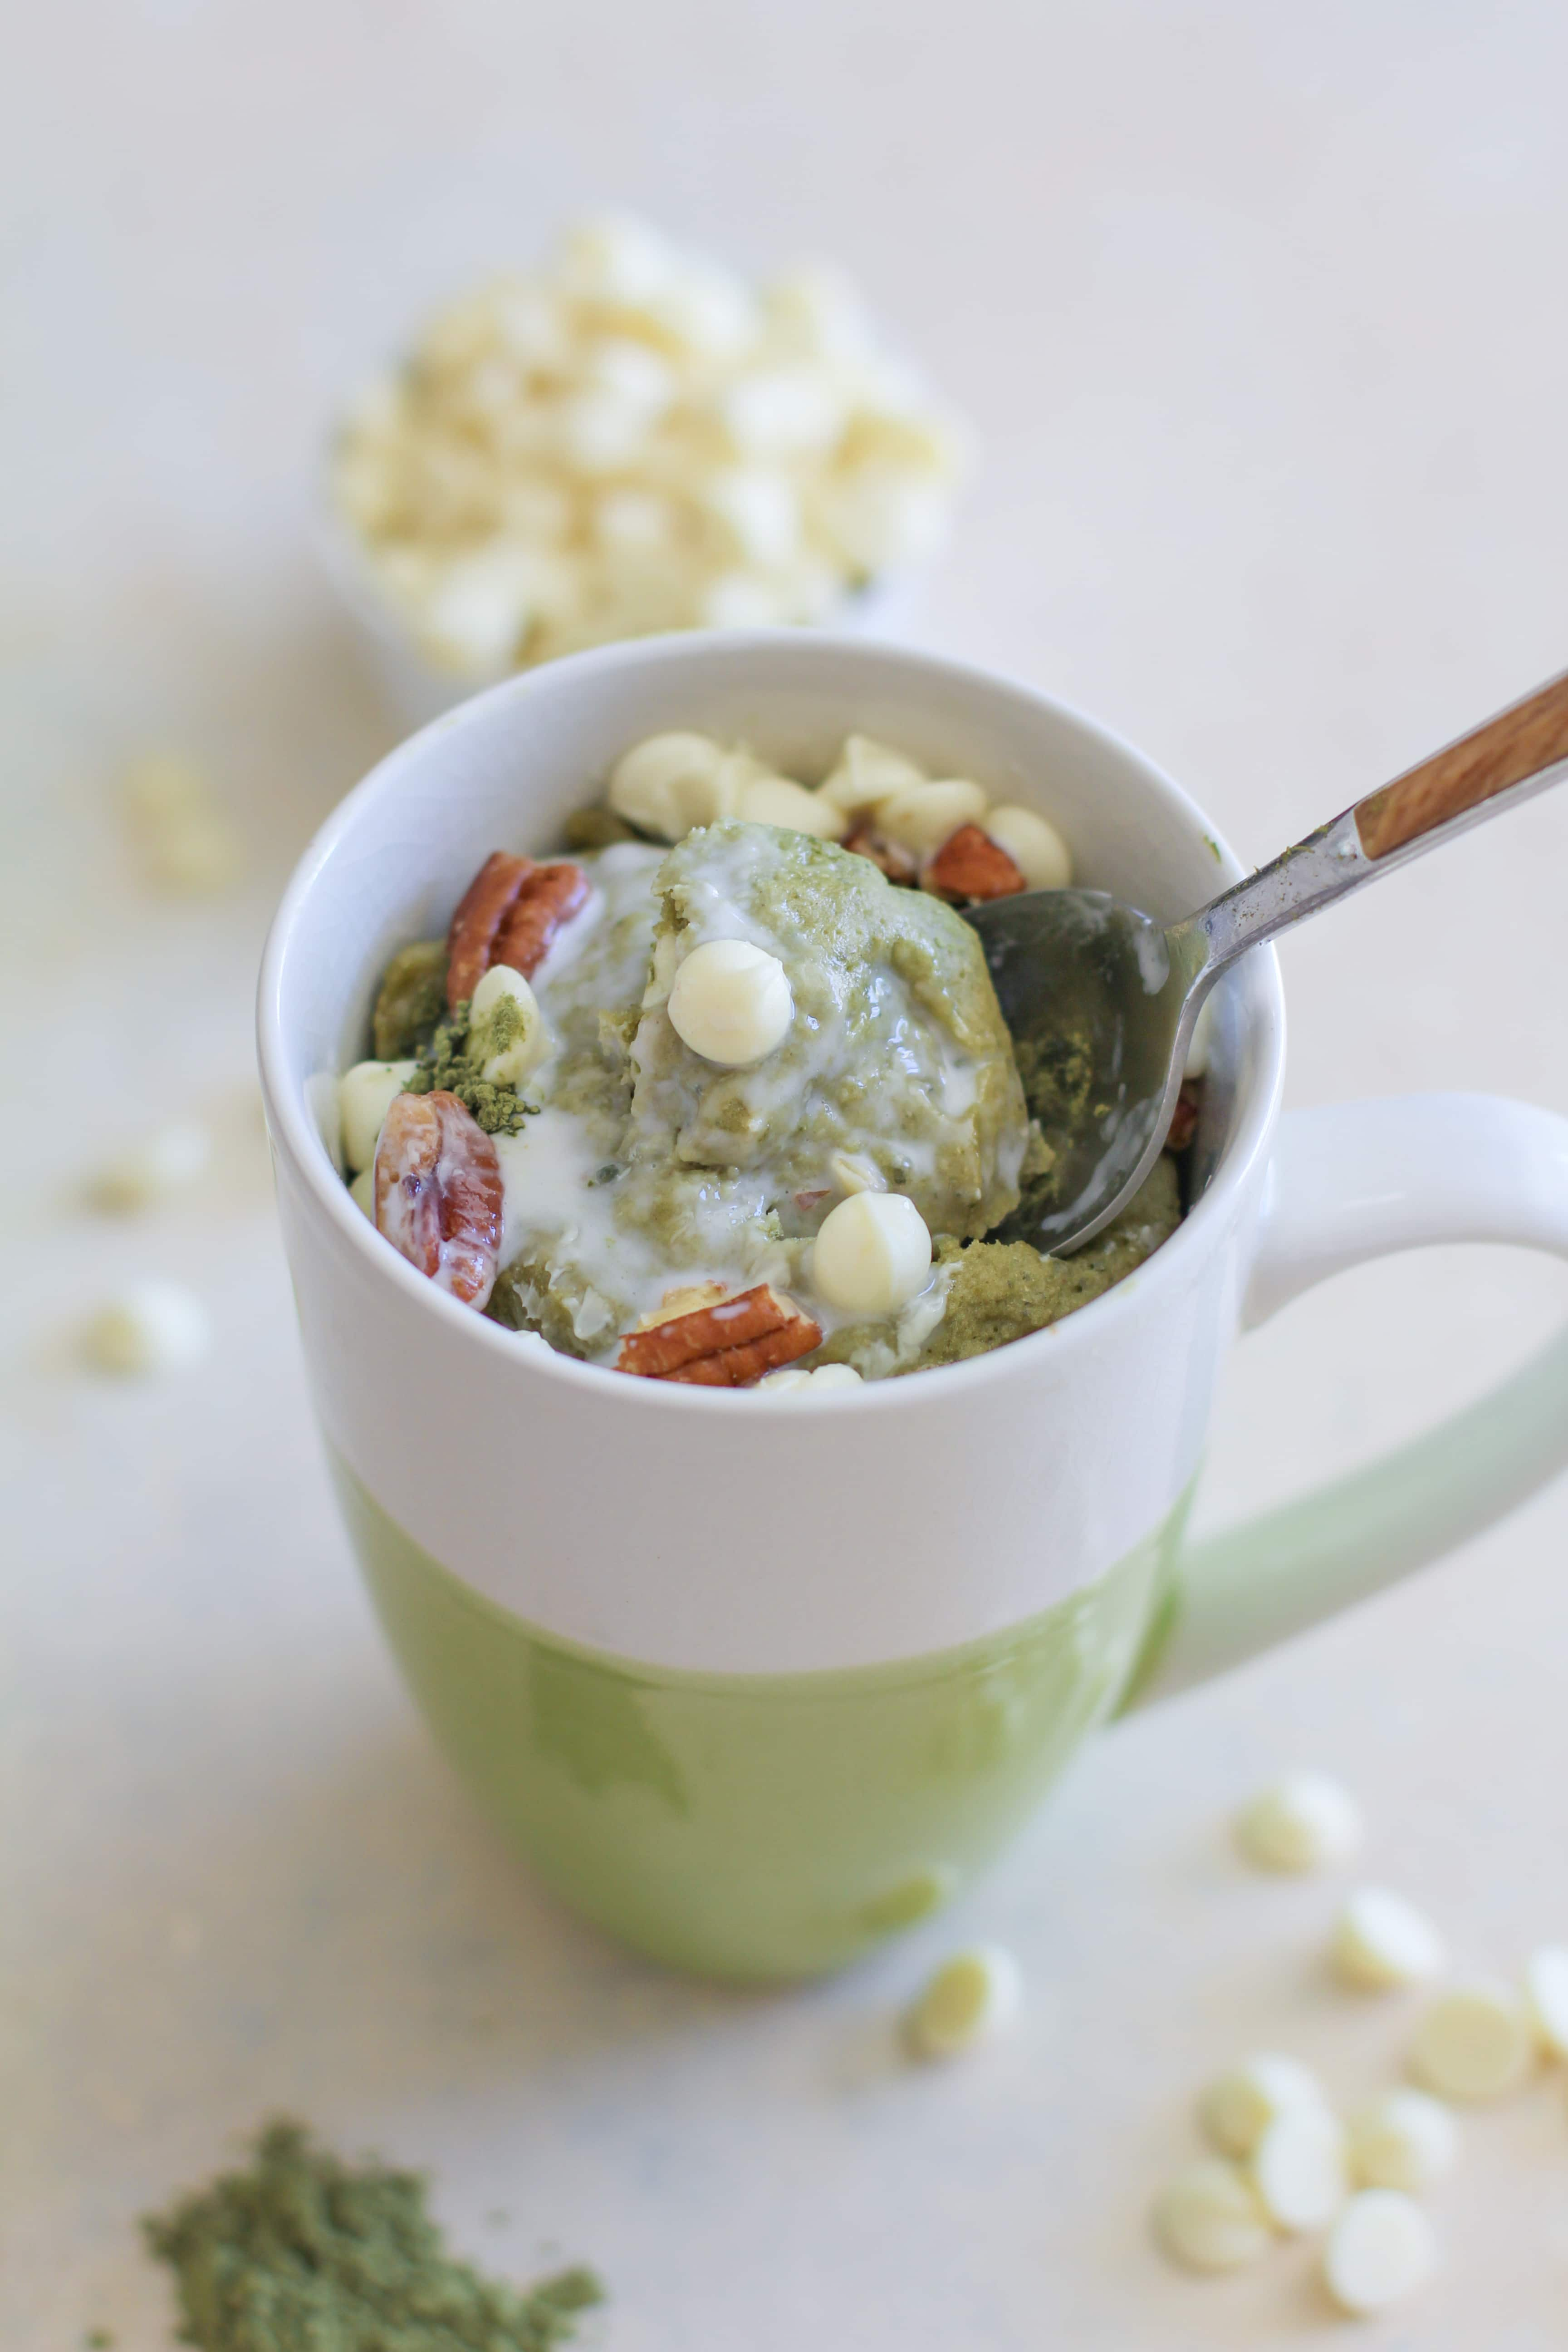 Matcha Mug Cake. Only 5 minutes required for this easy gluten-free dessert recipe